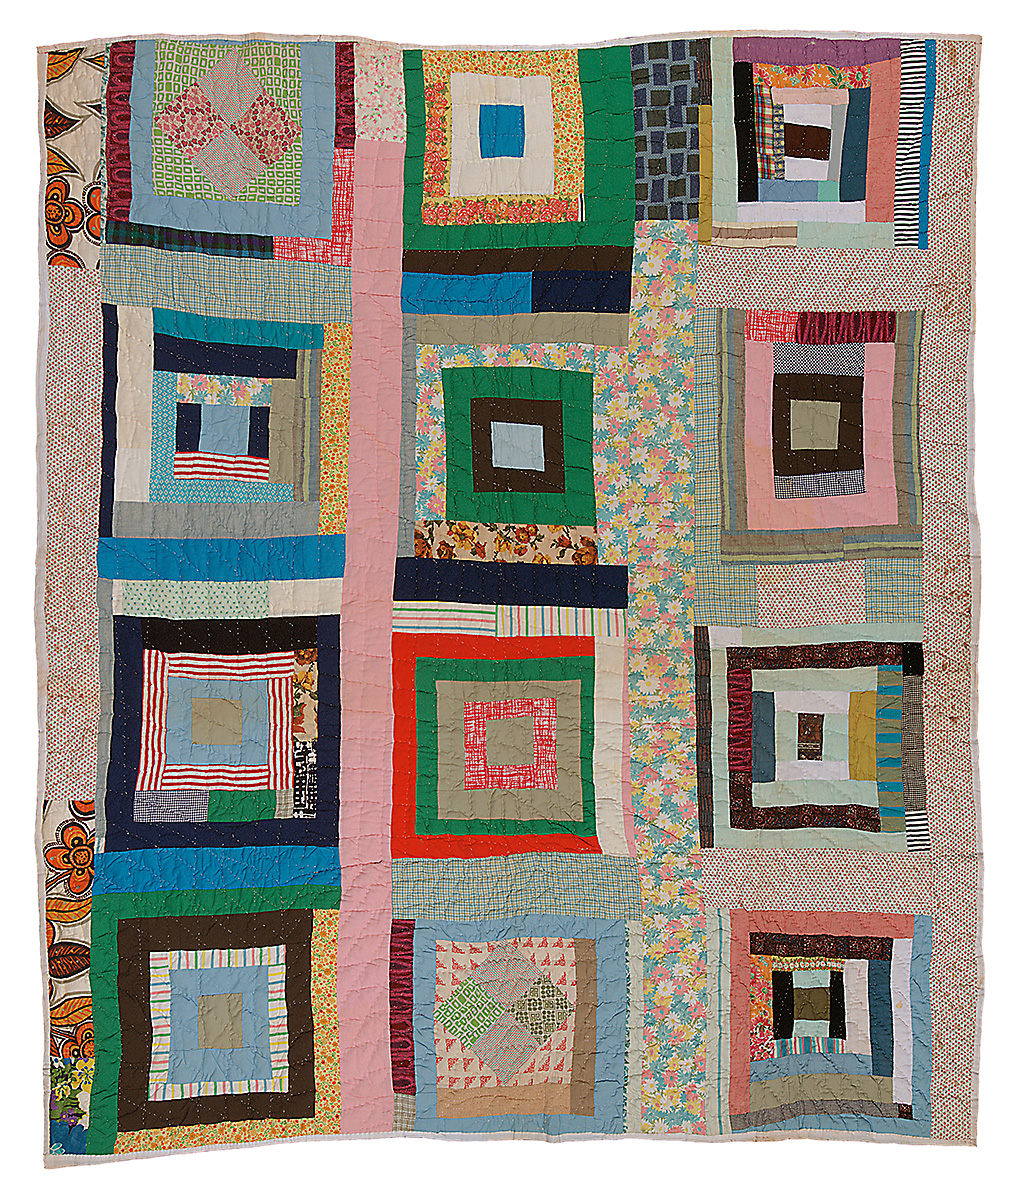 A multicolored quilt made of concentric squares and rectangles.